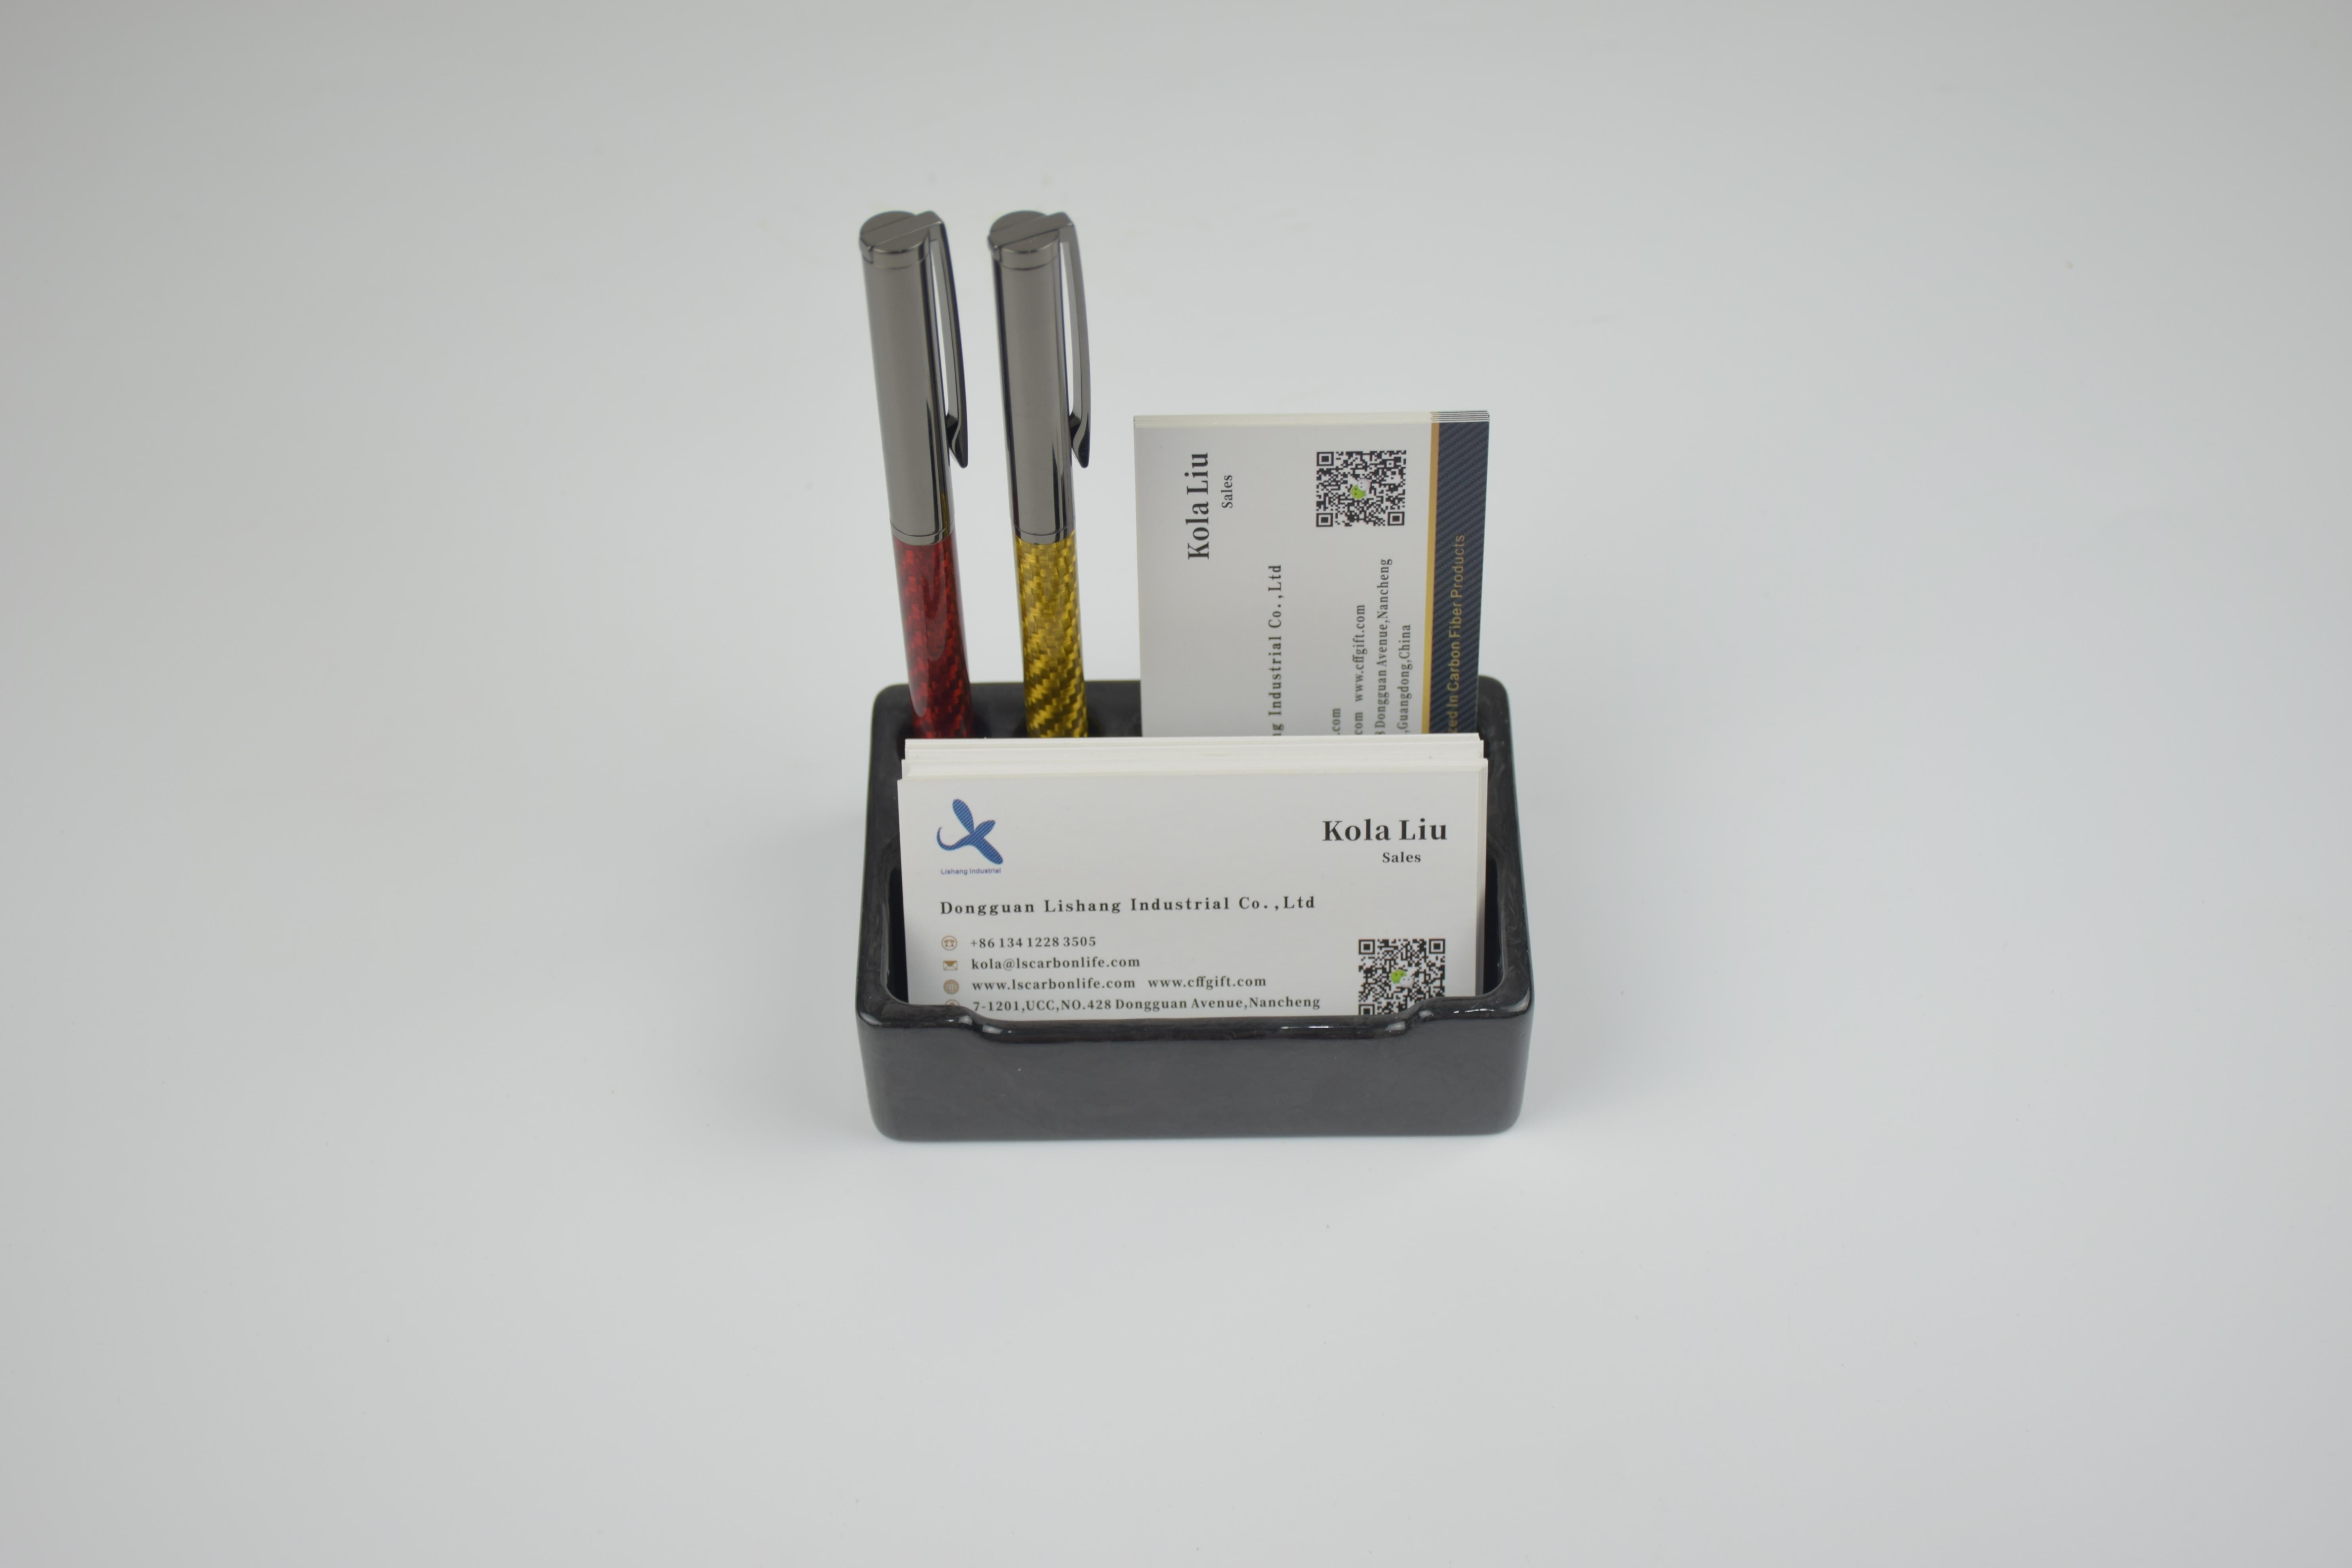 Carbon fiber business card display holder- -a comfortable home for business card